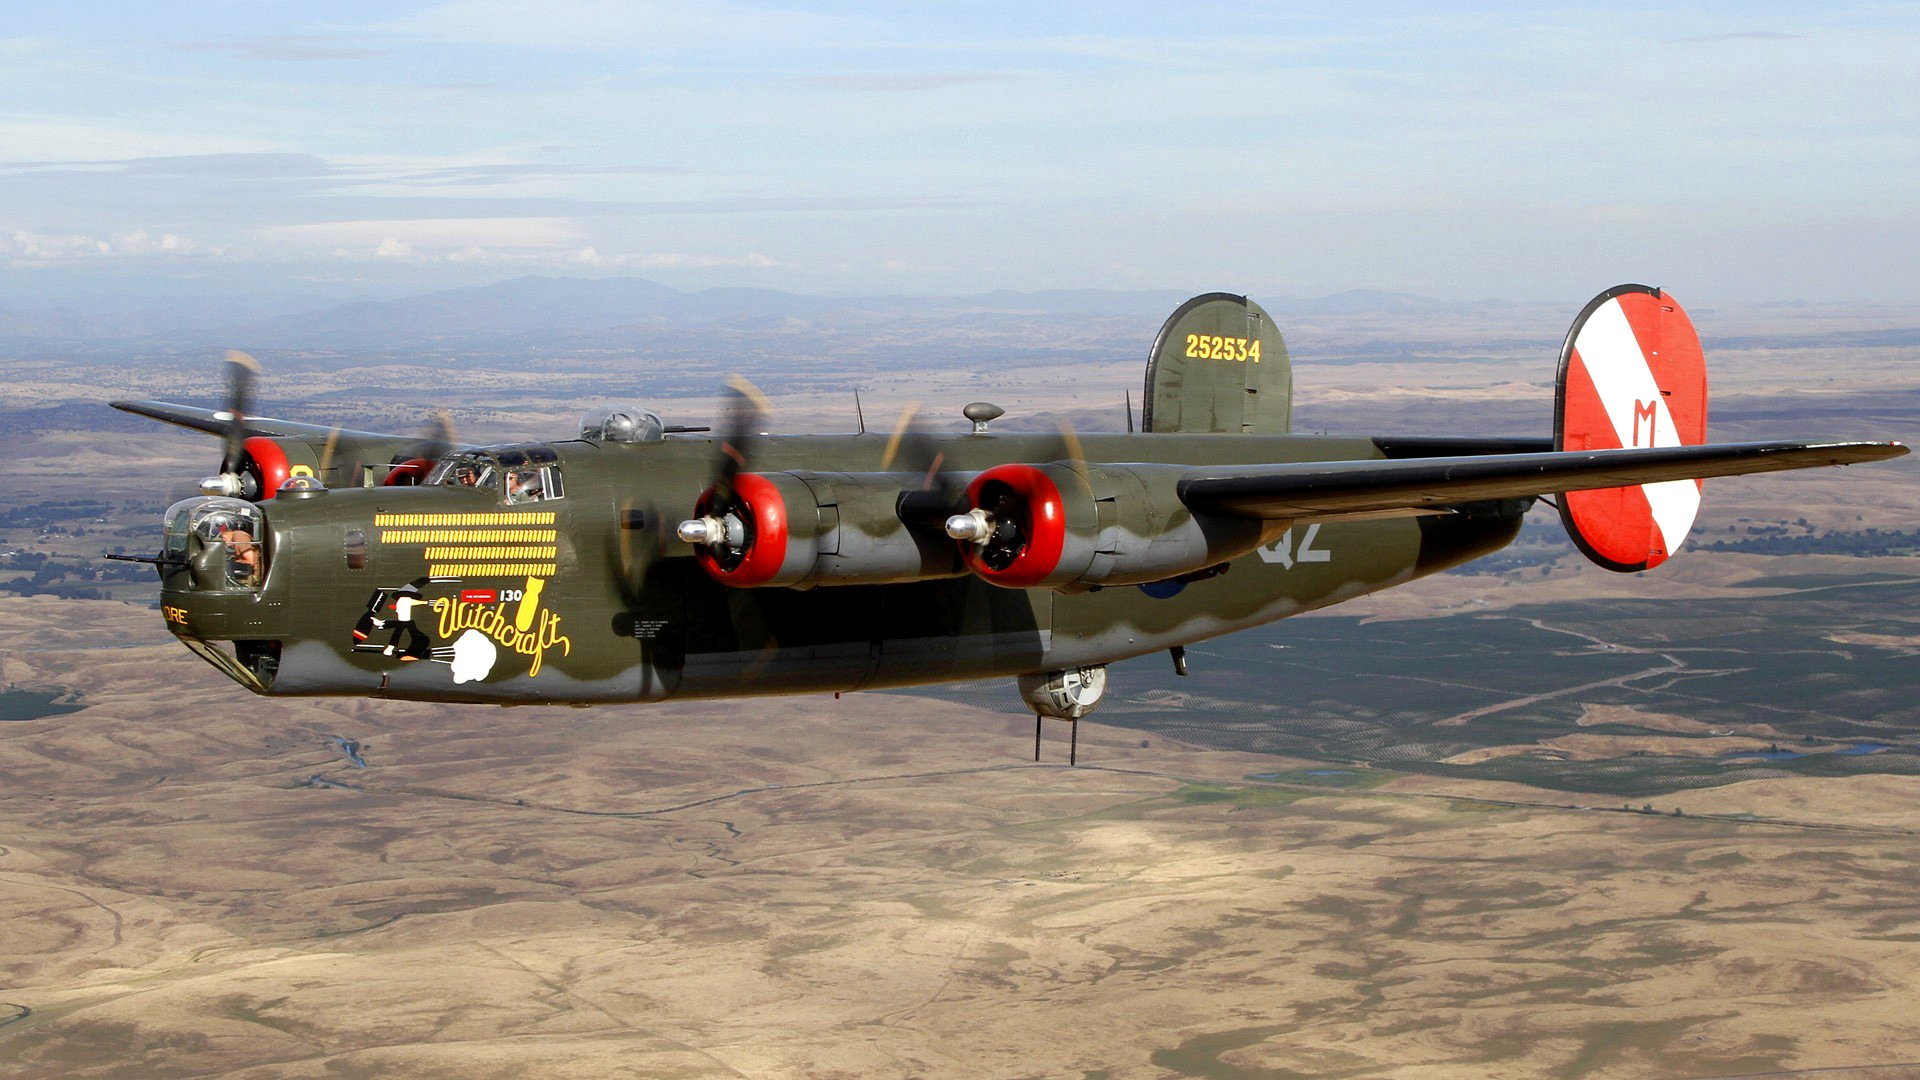 1920x1080 - Consolidated B-24 Liberator Wallpapers 10